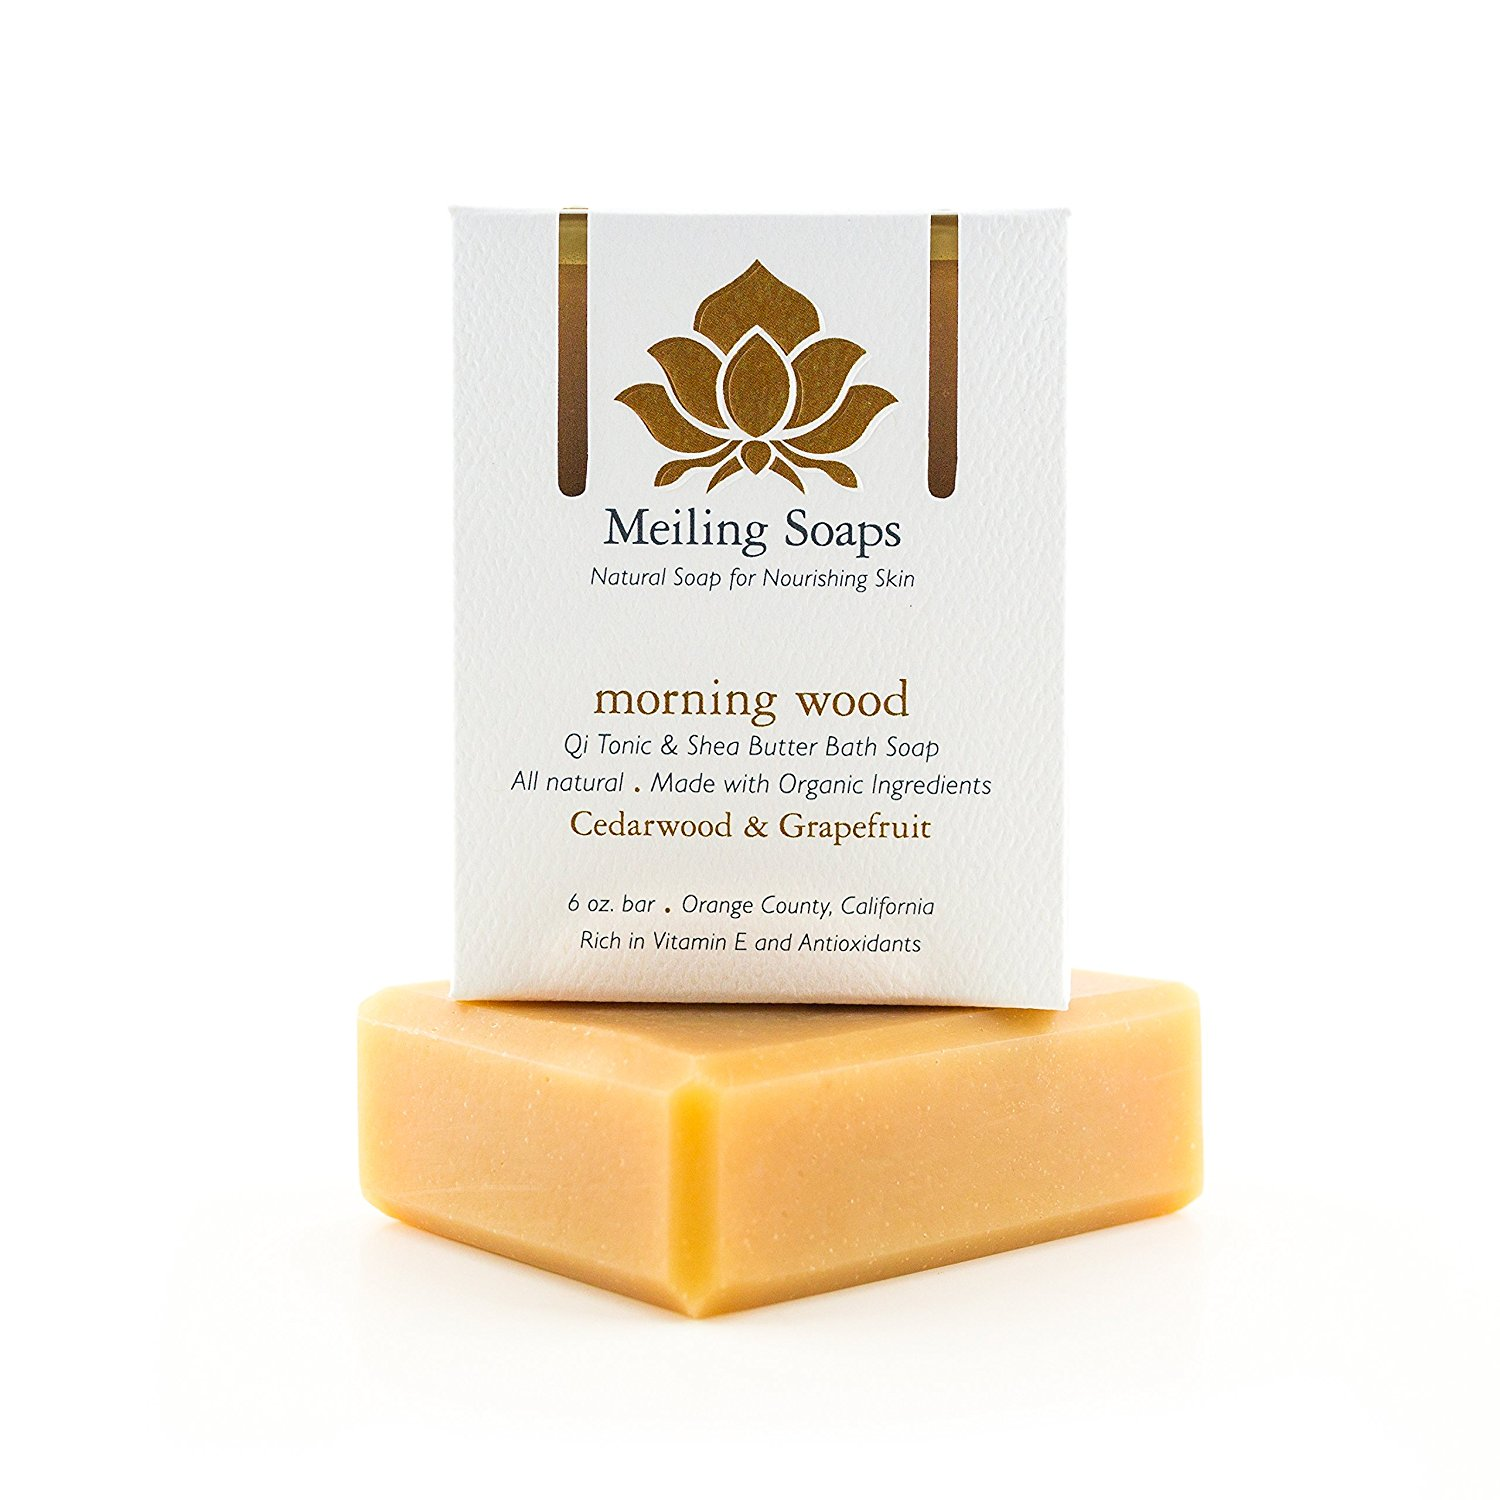 Morning Wood – Organic Natural Soap Bar Cedarwood Lime & Grapefruit Essential Oil Organic Shea Butter Soap w Vitamin E & Antioxidants - 6 Ounce Moisturizing Natural Soap Bar from Meiling Soaps